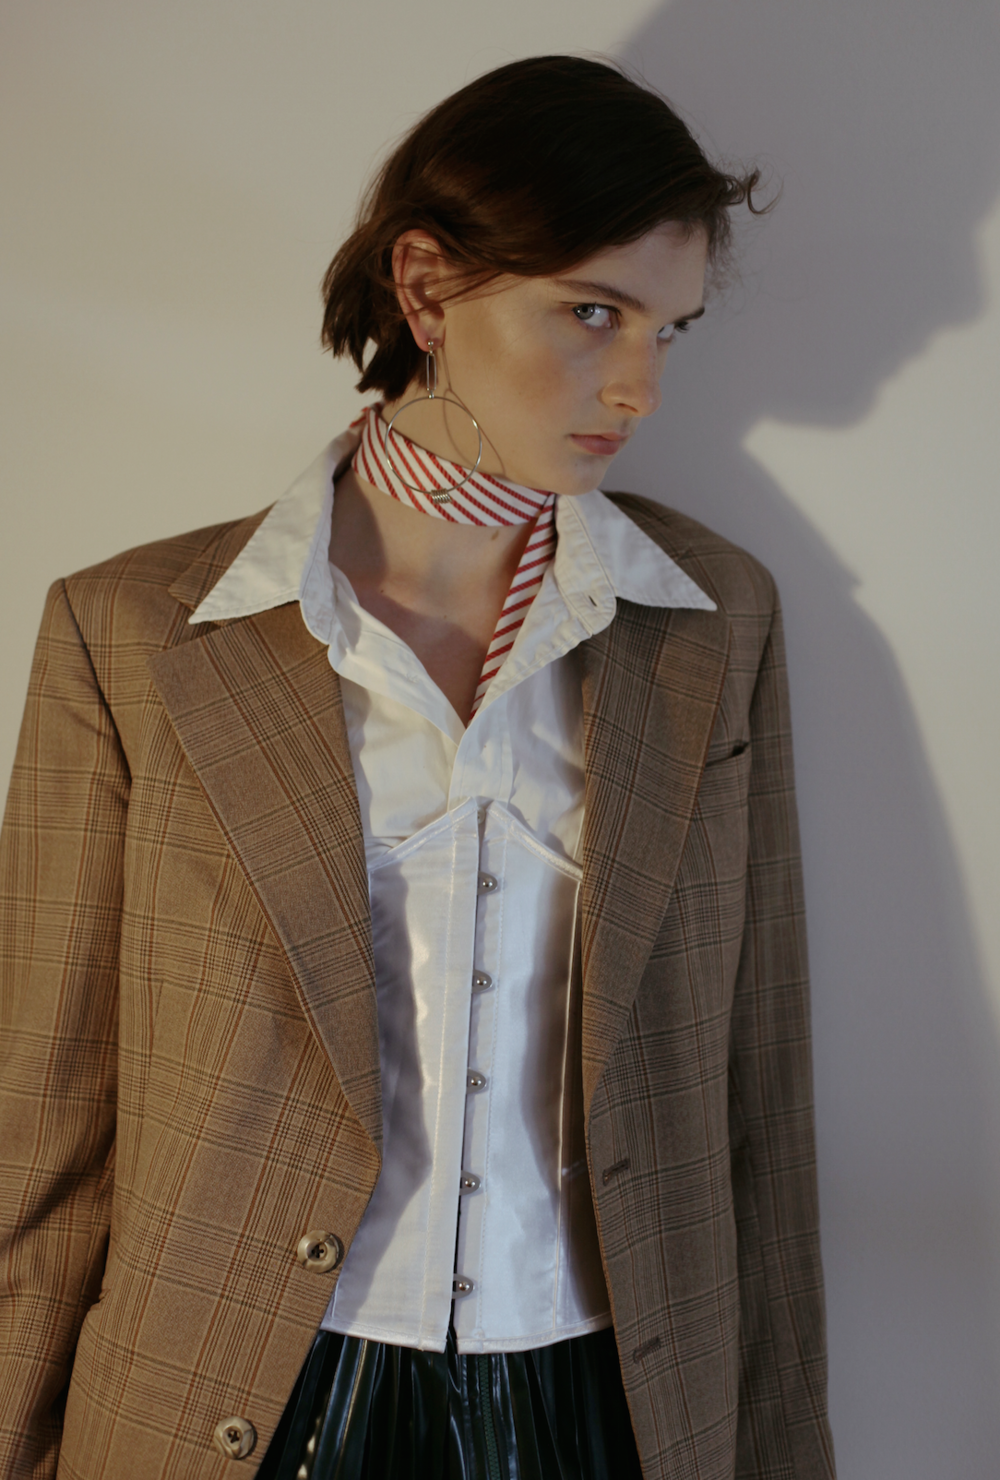 jacket VINTAGE, earring  JUSTINE CLENQUET , scarf STYLIST'S OWN, skirt  TOGA PULLA